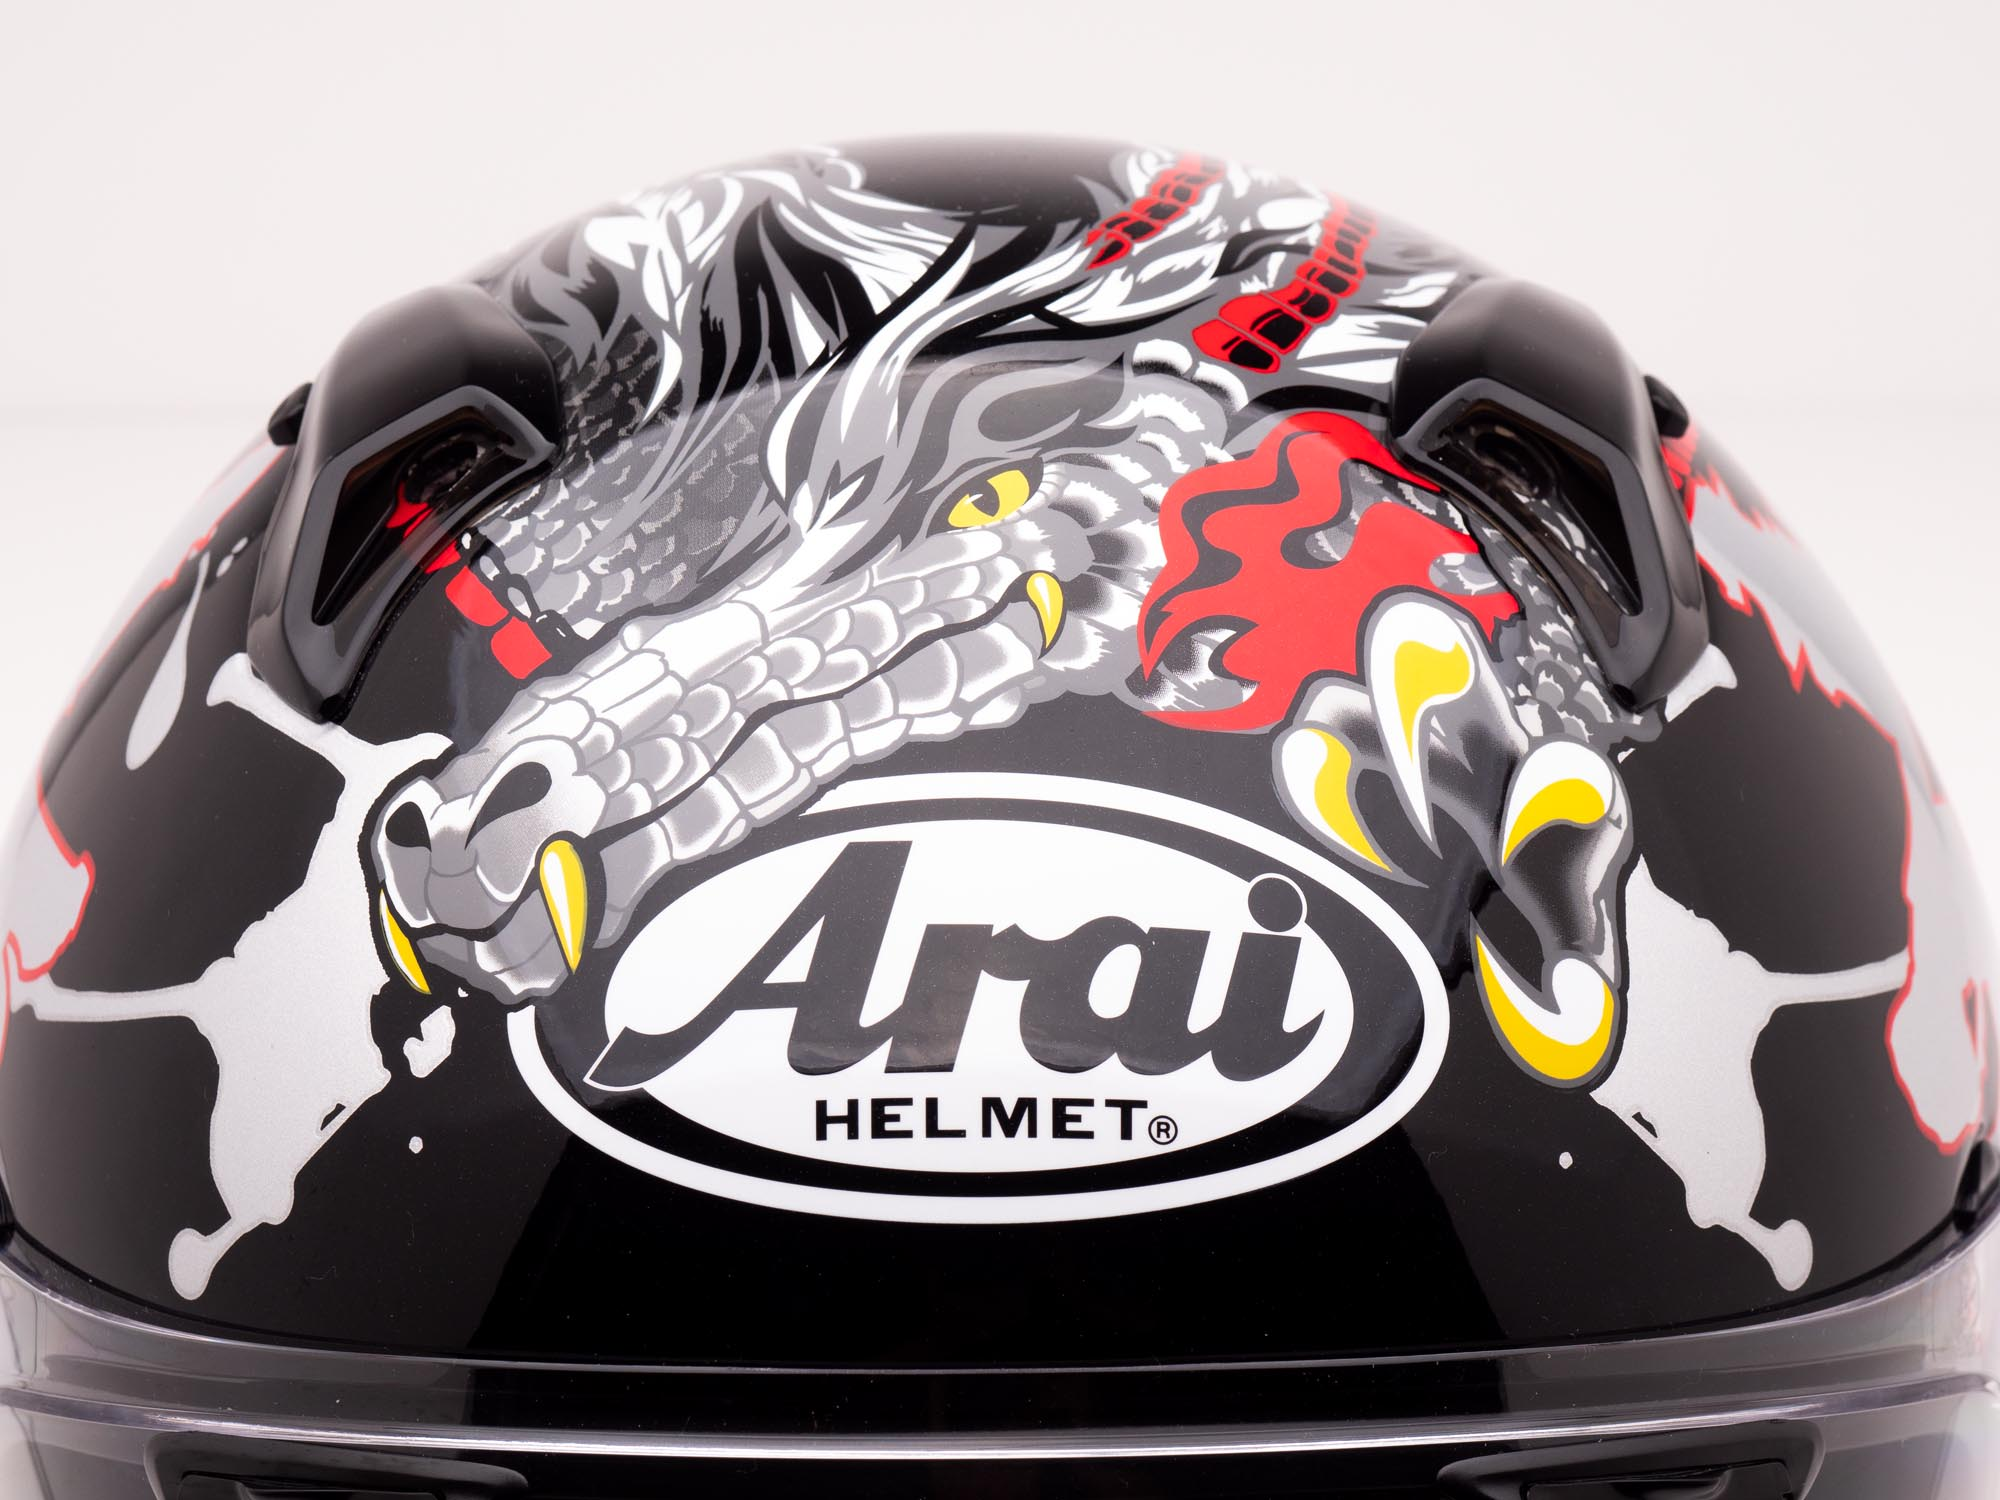 Arai Defiant-X Helmet with Dragon Graphics